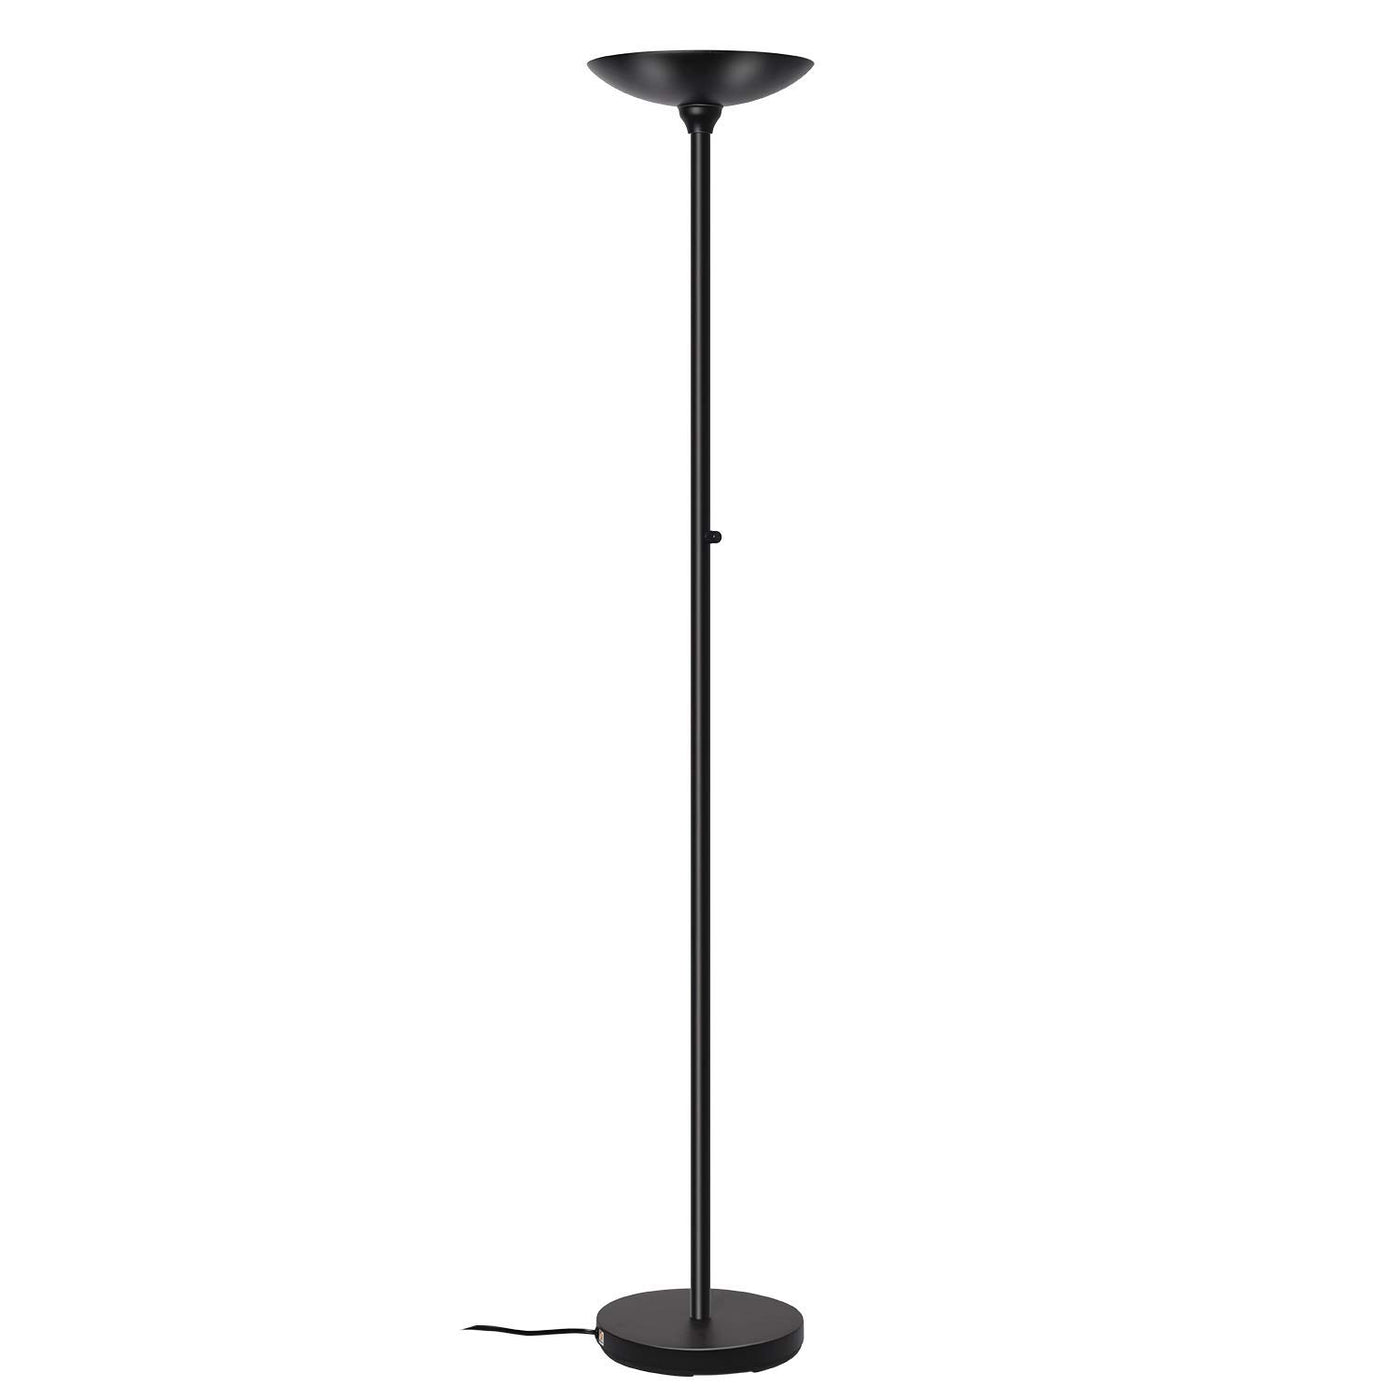 SUNLLIPE LED Torchiere Floor Lamp 19W